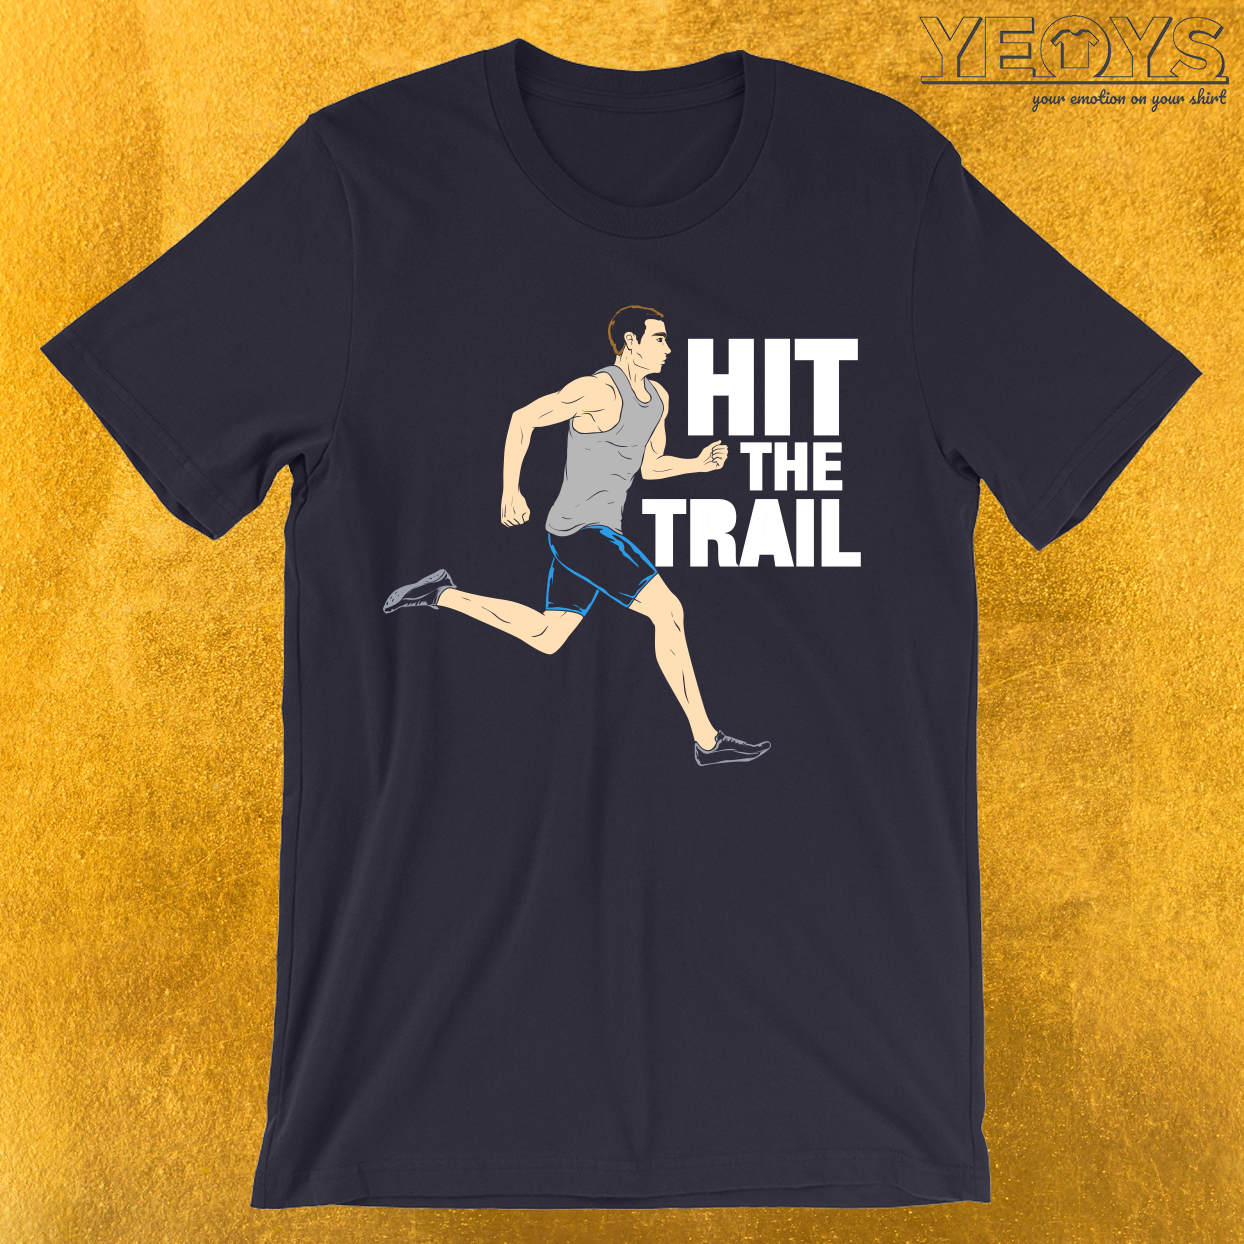 Hit The Trail Running Vintage T Shirt Vintage Gym Novelty This Jogging Sprinting Men Women T Shirt W Running Shirts Vintage Tshirts Vintage Tee Shirts